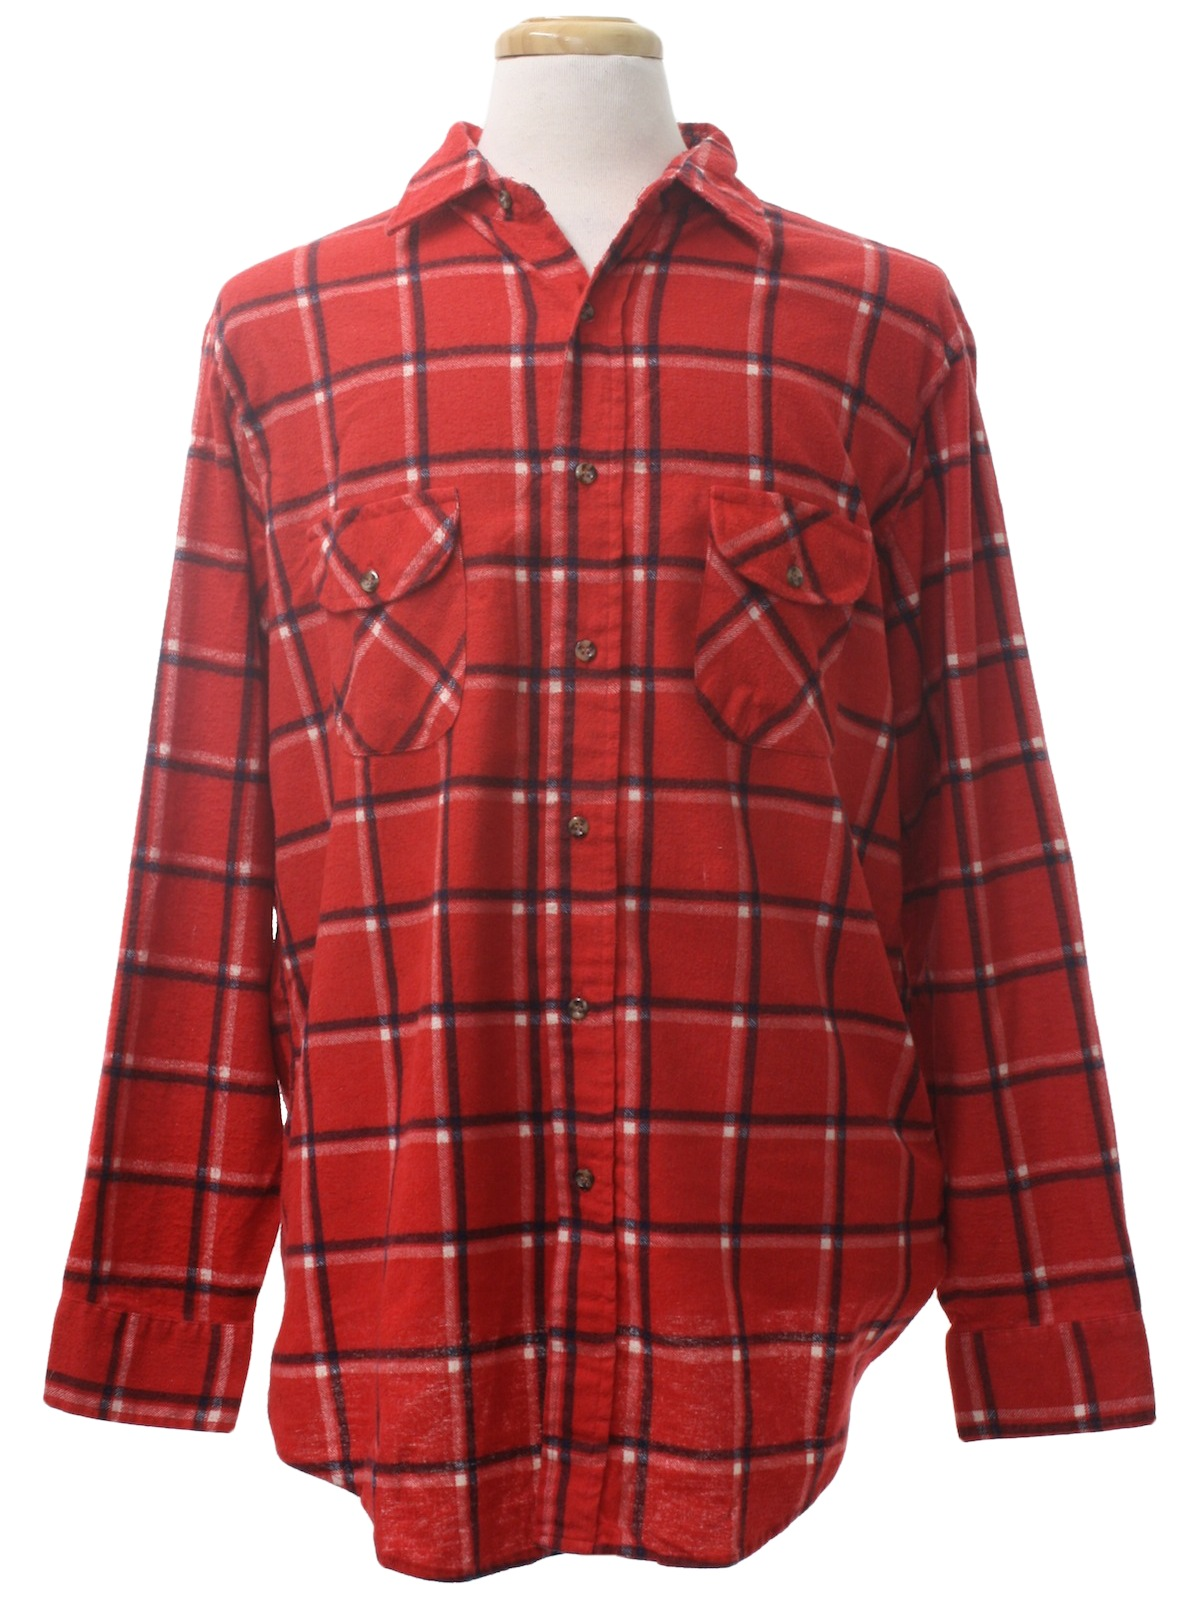 90 39 s sparetime shirt 90s sparetime mens red background for Navy blue and red flannel shirt